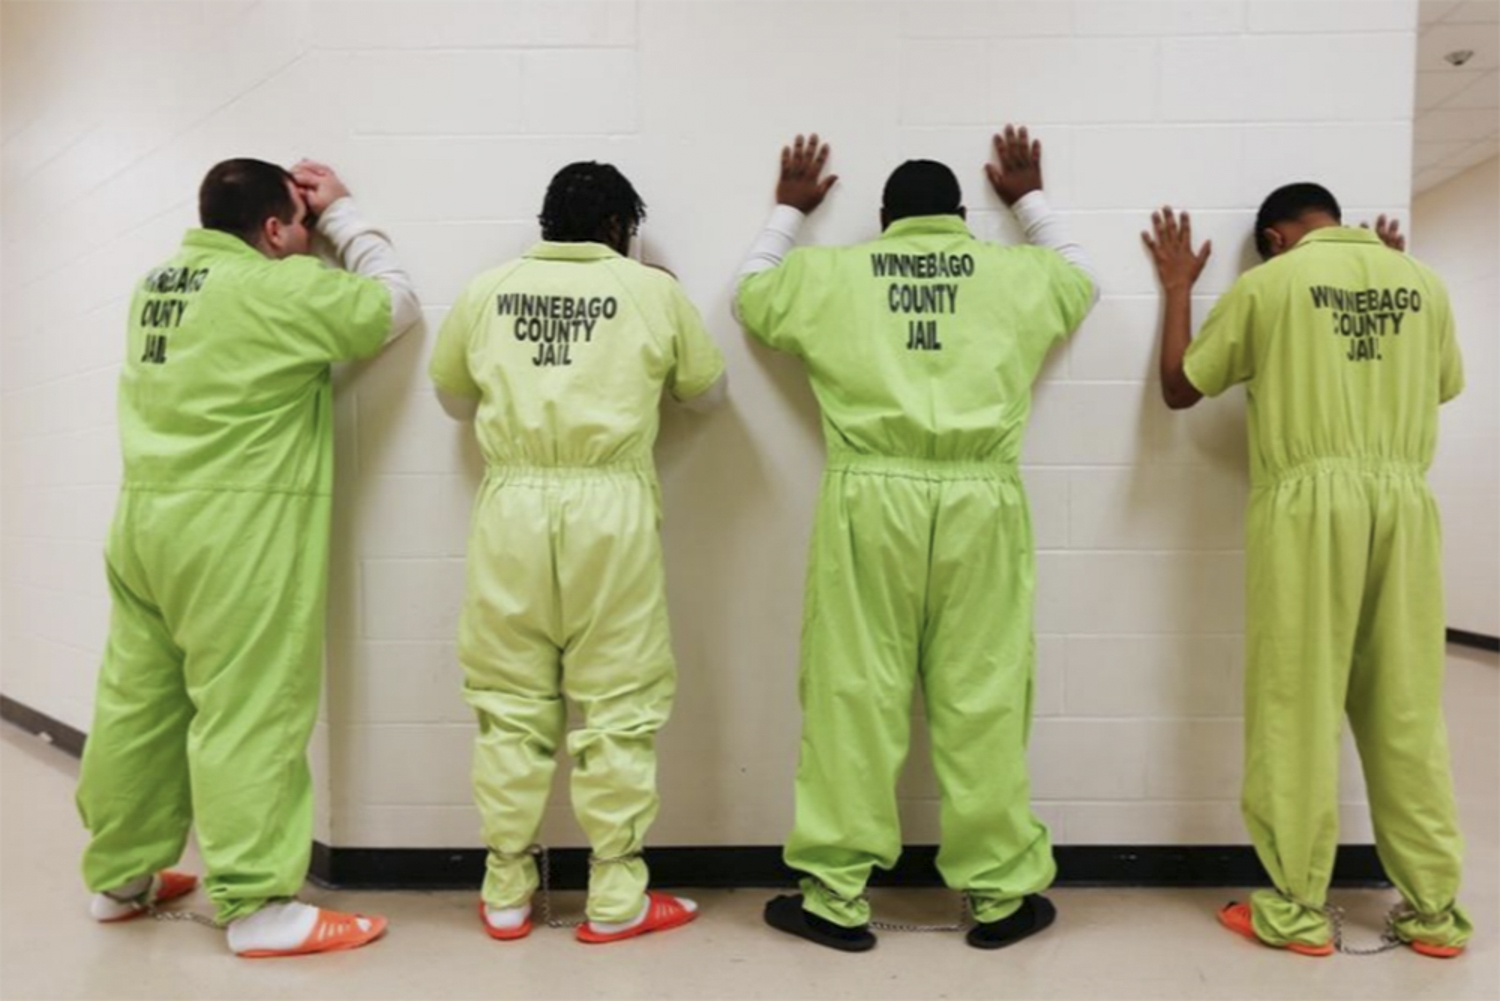 Inmates stand to prepare for transport on Dec. 7, 2017, at the Winnebago County Jail in Rockford, Illinois. [Scott P. Yates/rrstar.com staff]